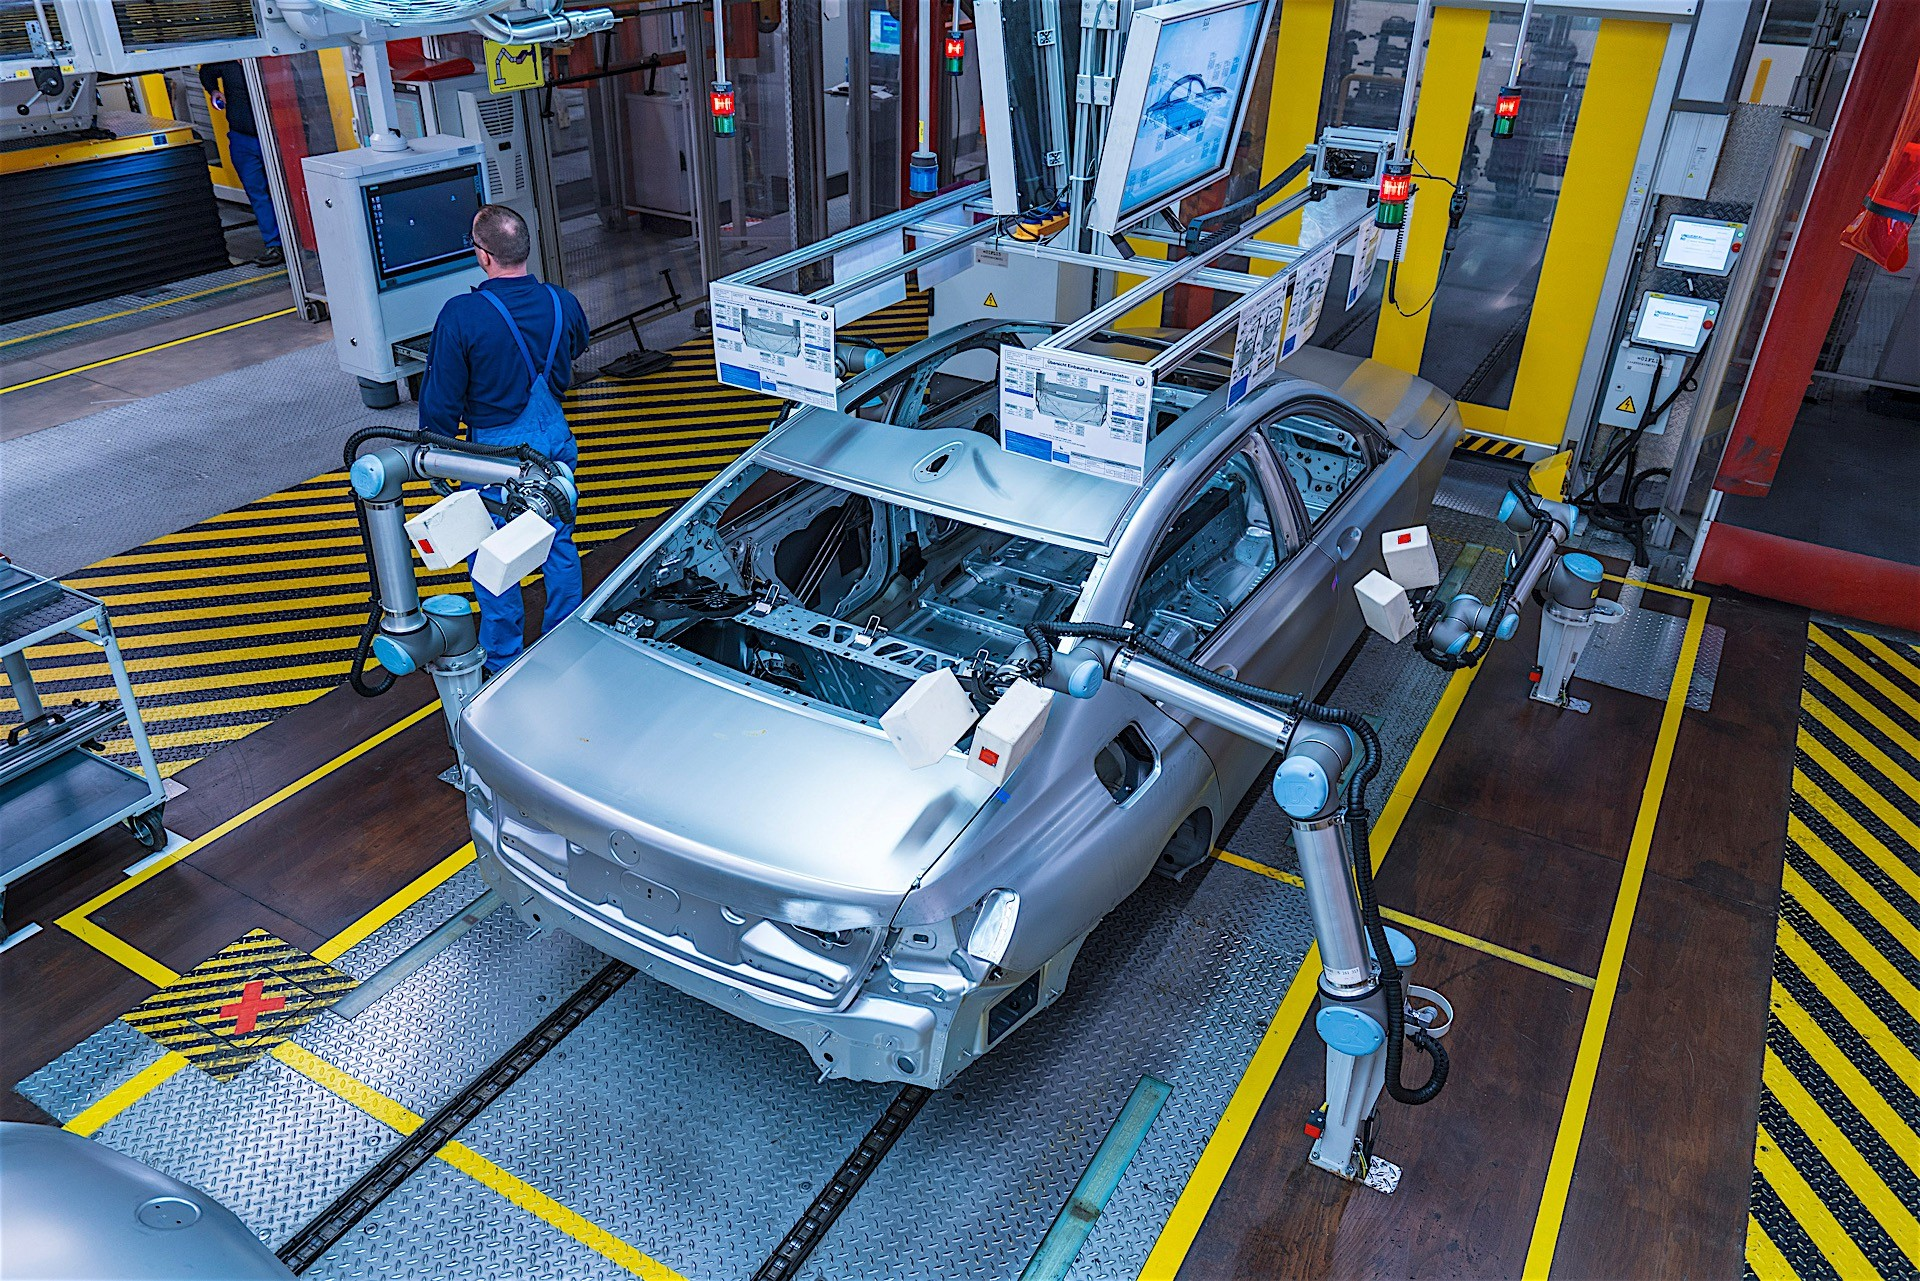 from being a maintenance planner at bmw A bmw mechanic's median annual salary is about $37,000, but is it worth the training requirements read real job descriptions and see the truth about career prospects to decide if becoming a bmw mechanic is right for you.